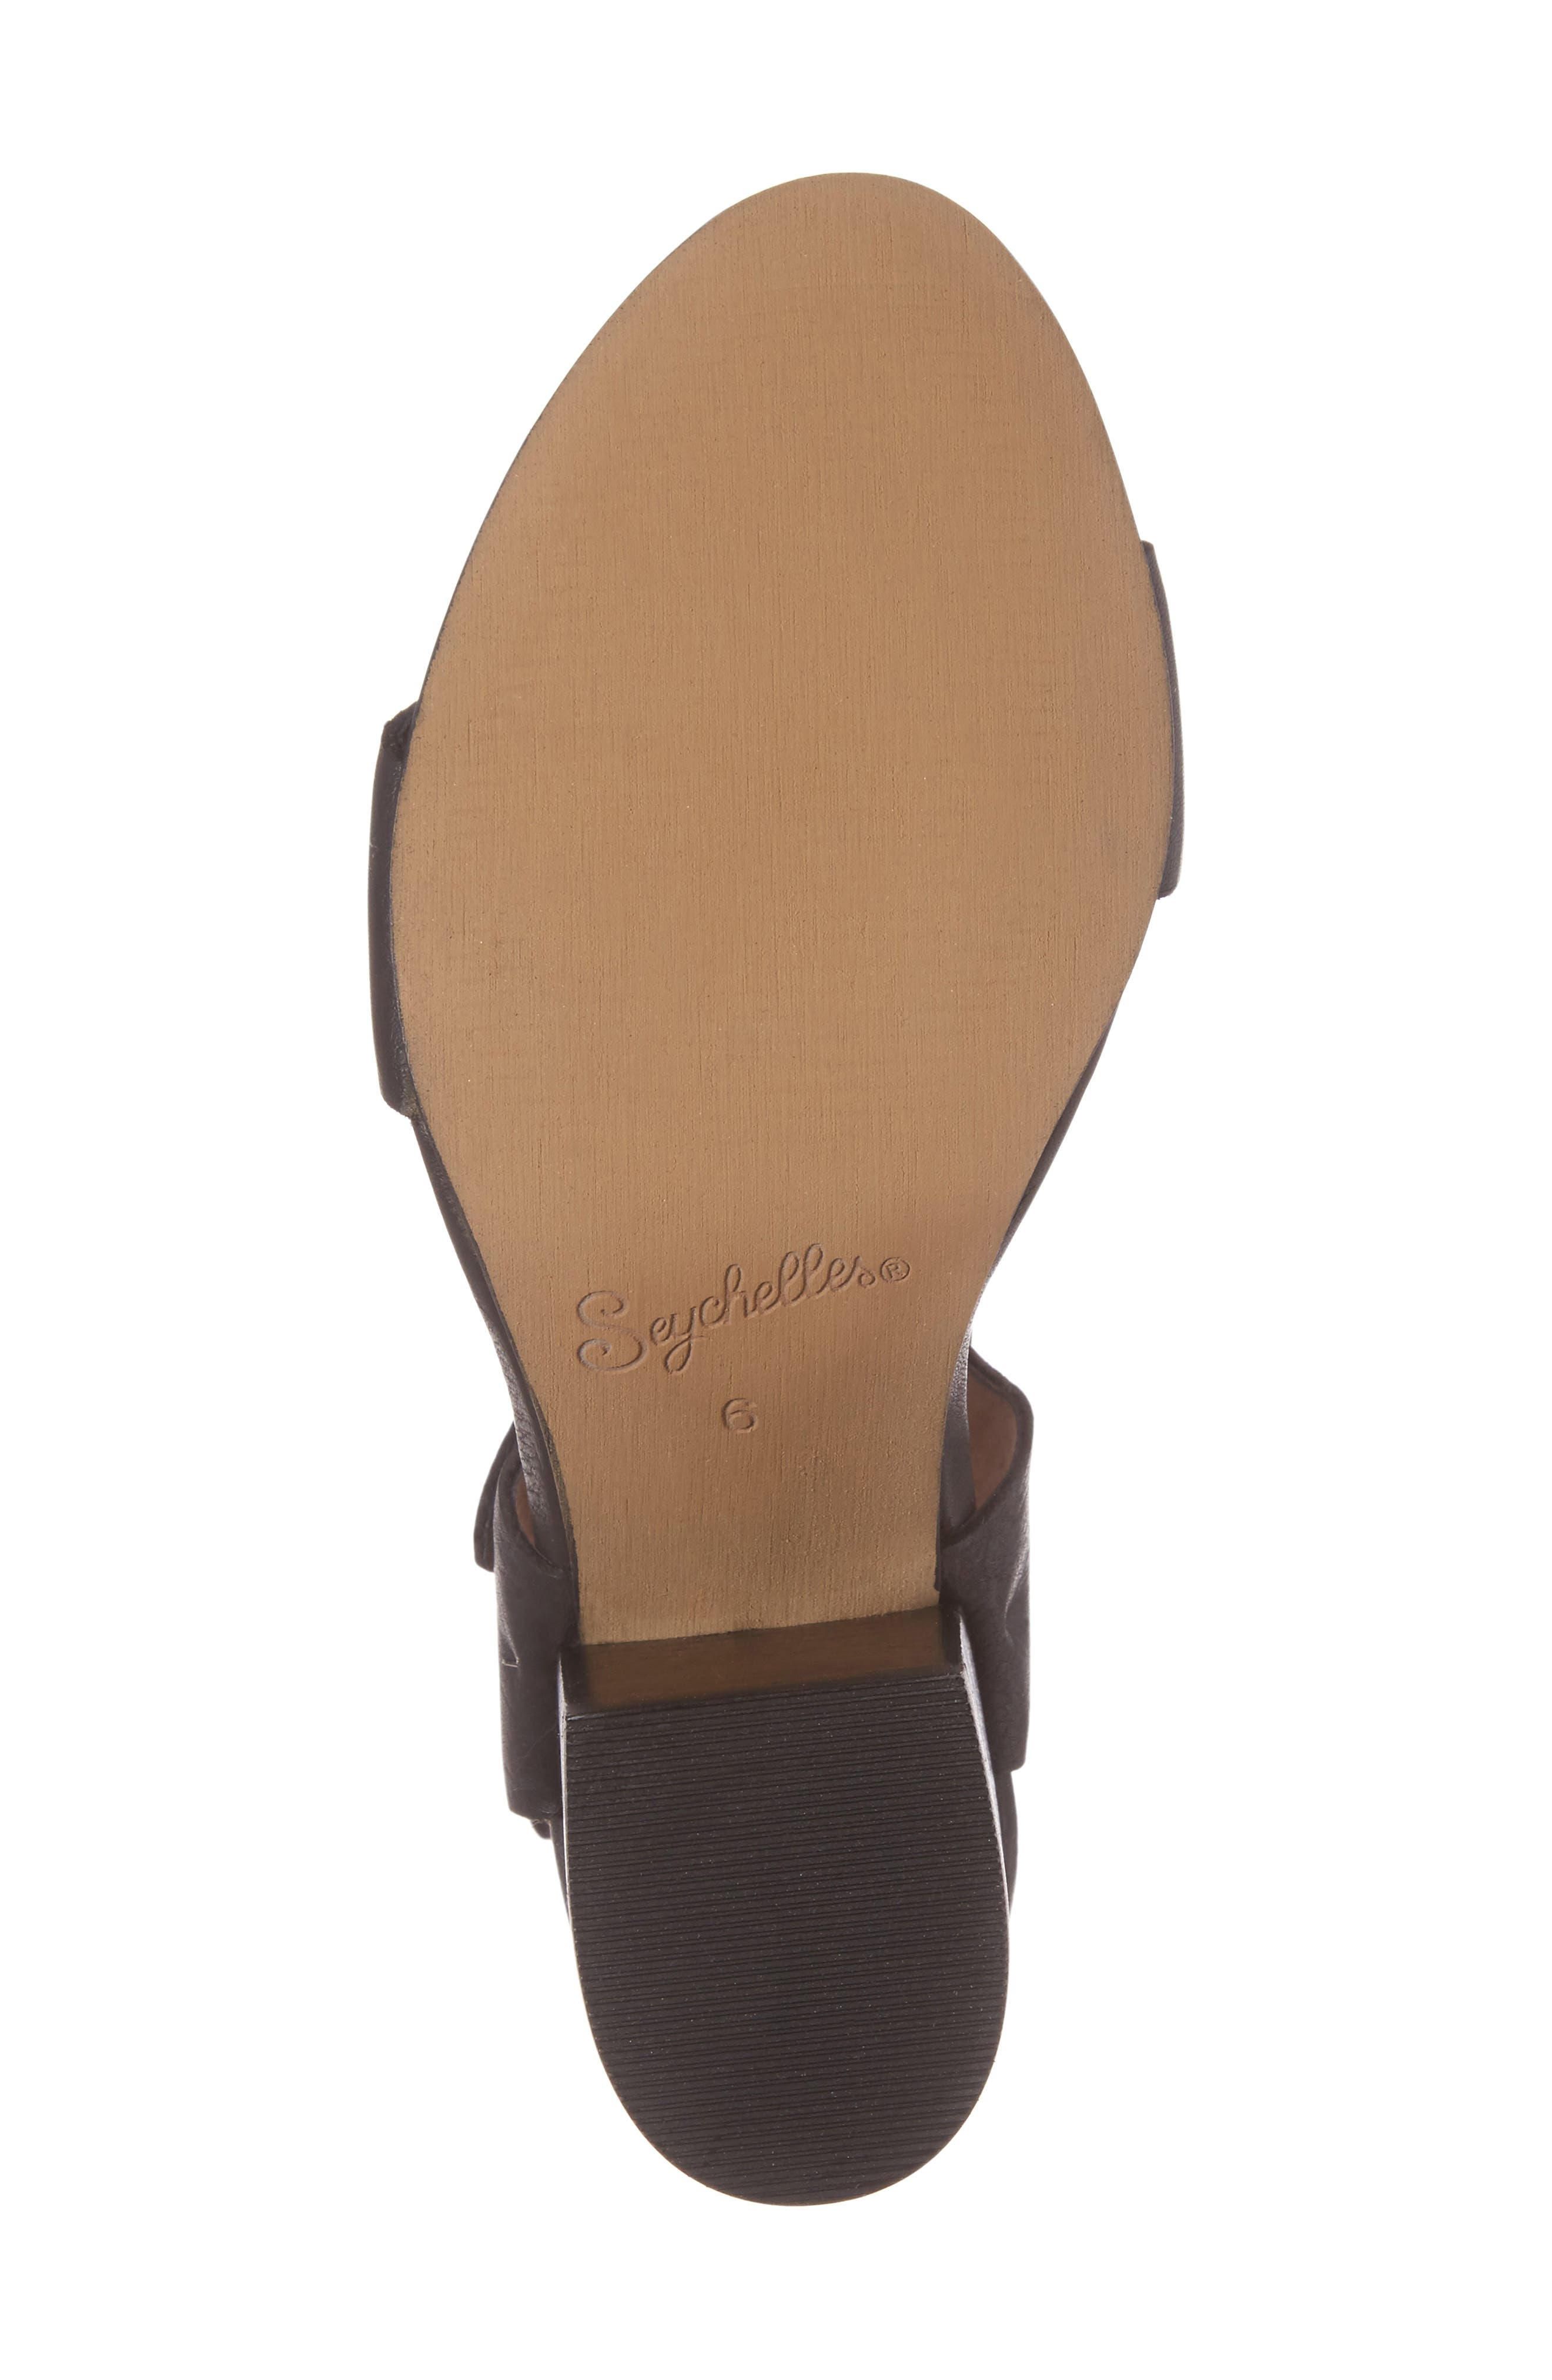 Dilly Dally Sandal,                             Alternate thumbnail 6, color,                             001